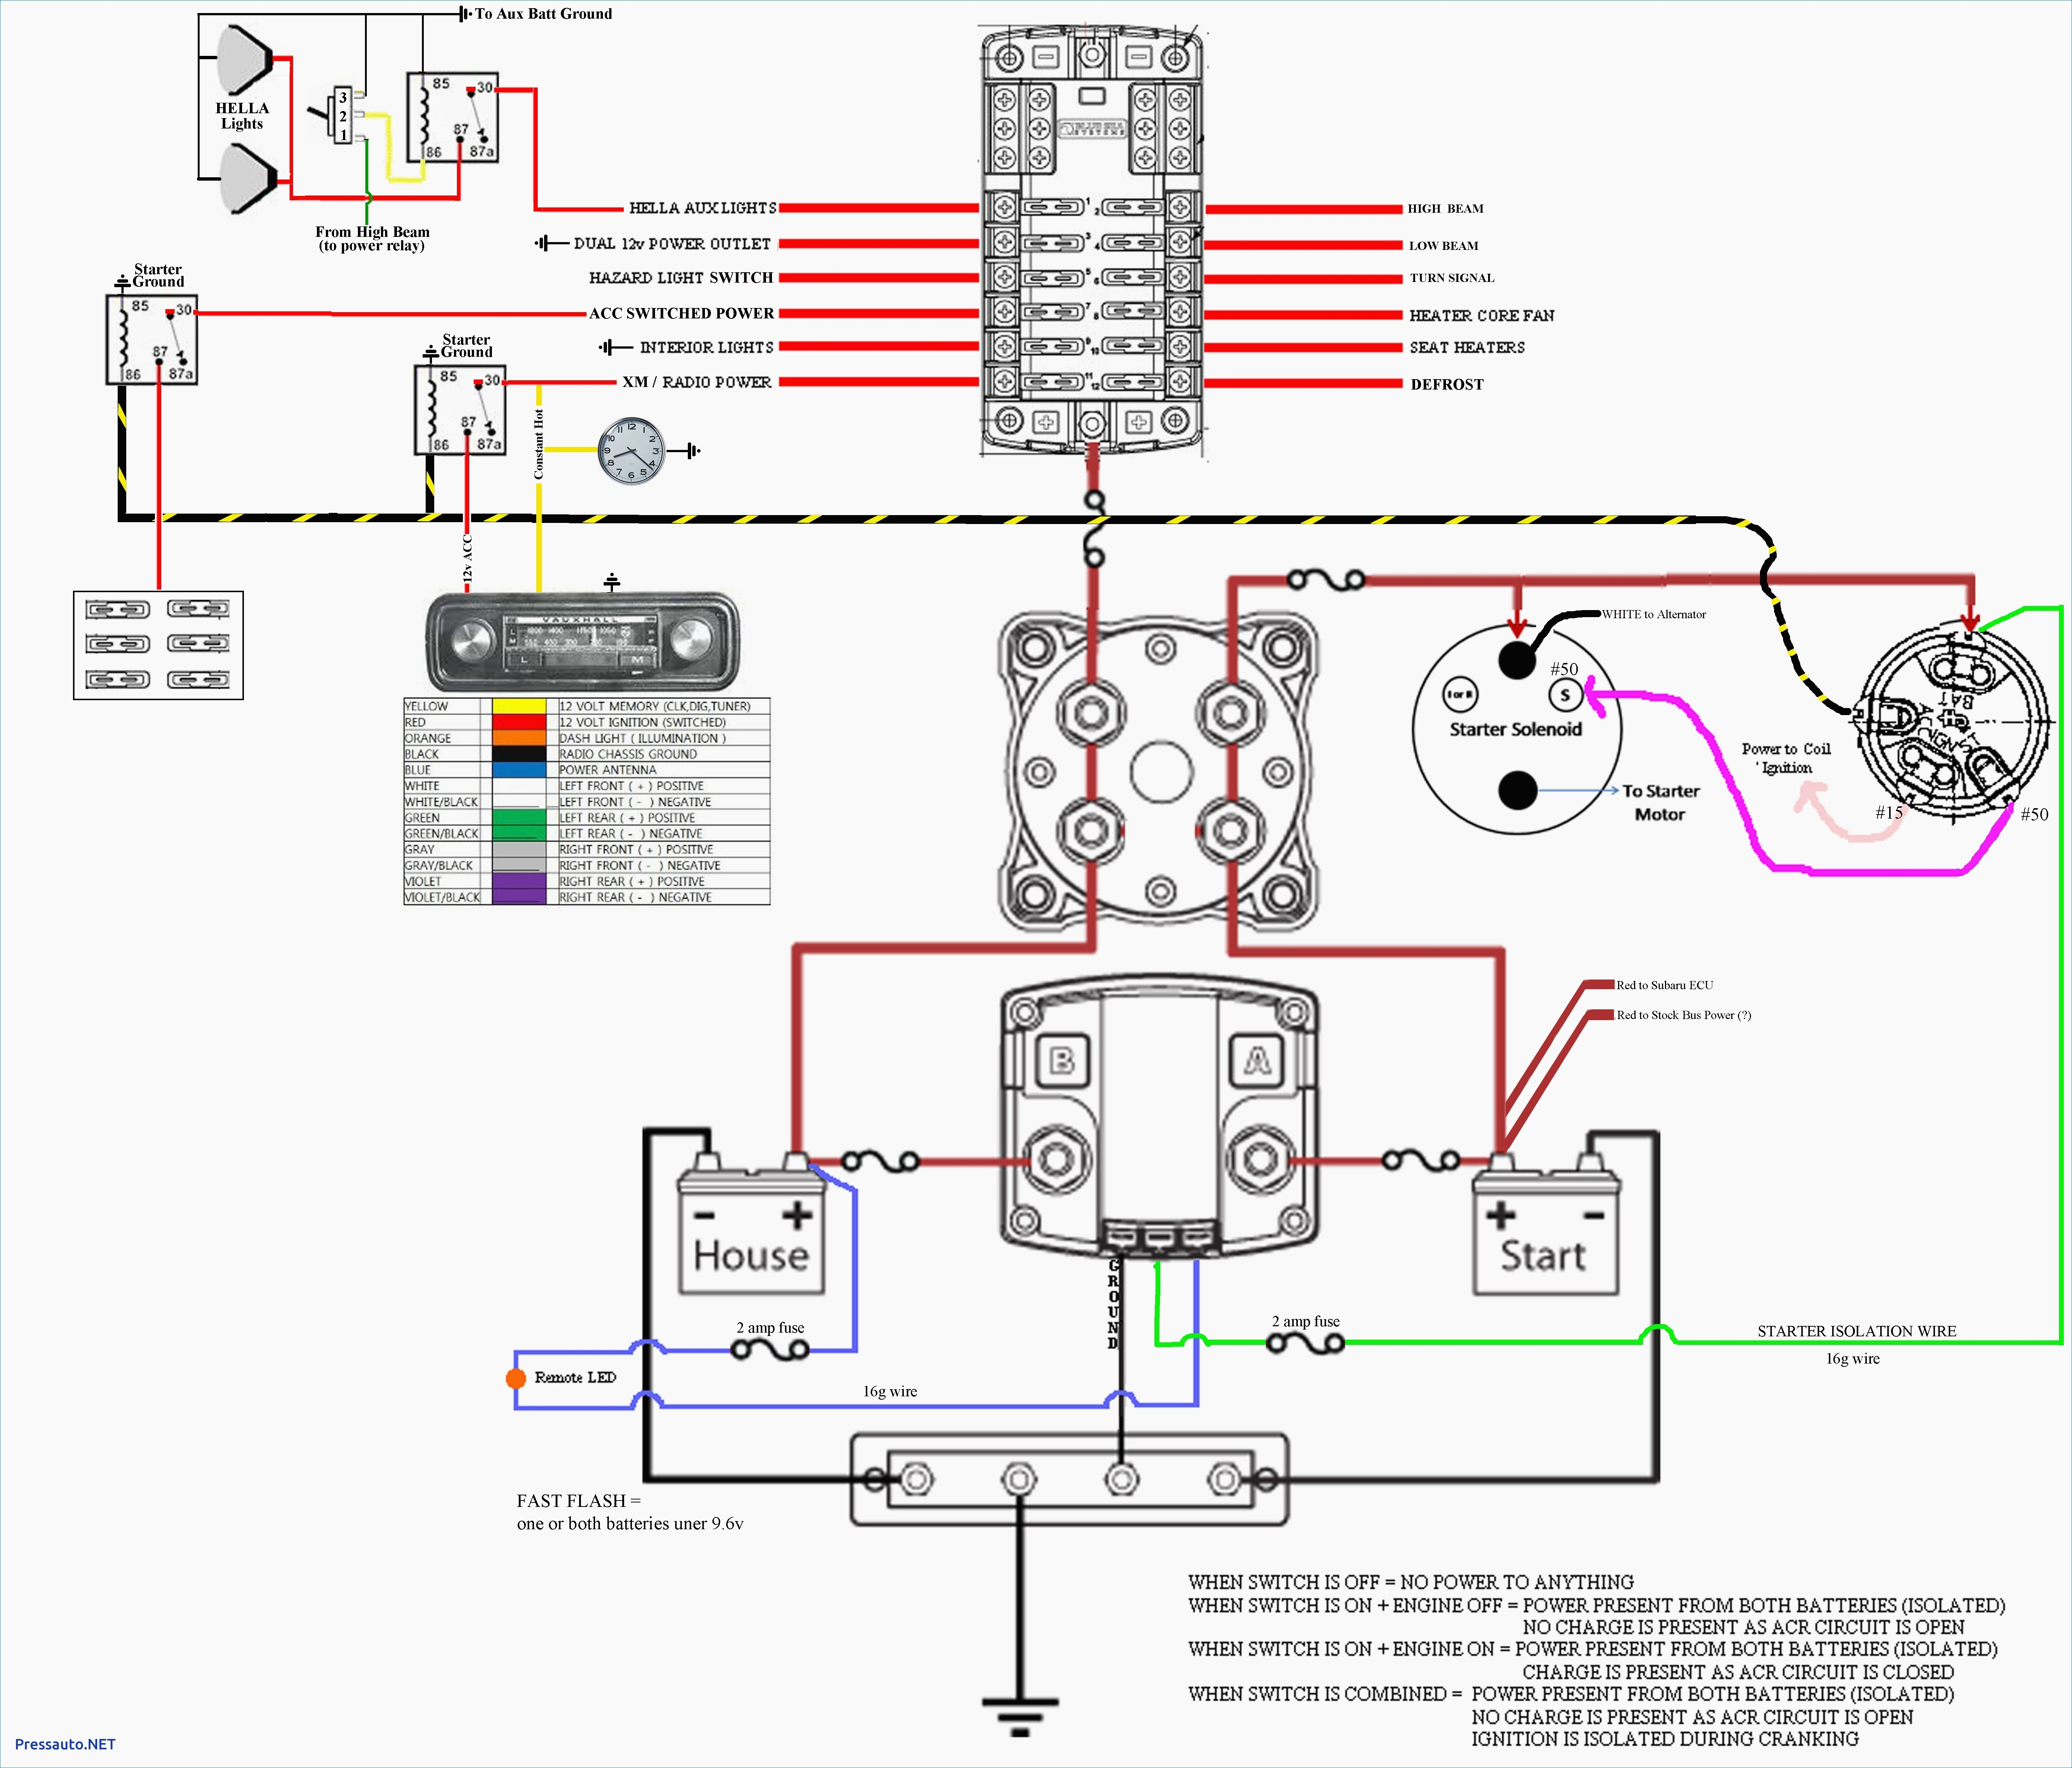 NW_5668] Blue Sea Dual Battery Boat Wiring Diagram Together With Battery  Switch Schematic Wiring | Twin Sel Battery Wiring Diagram |  | Cette Numdin Xeira Sputa Puti Pila Carn Weasi Estep Wigeg Mohammedshrine  Librar Wiring 101